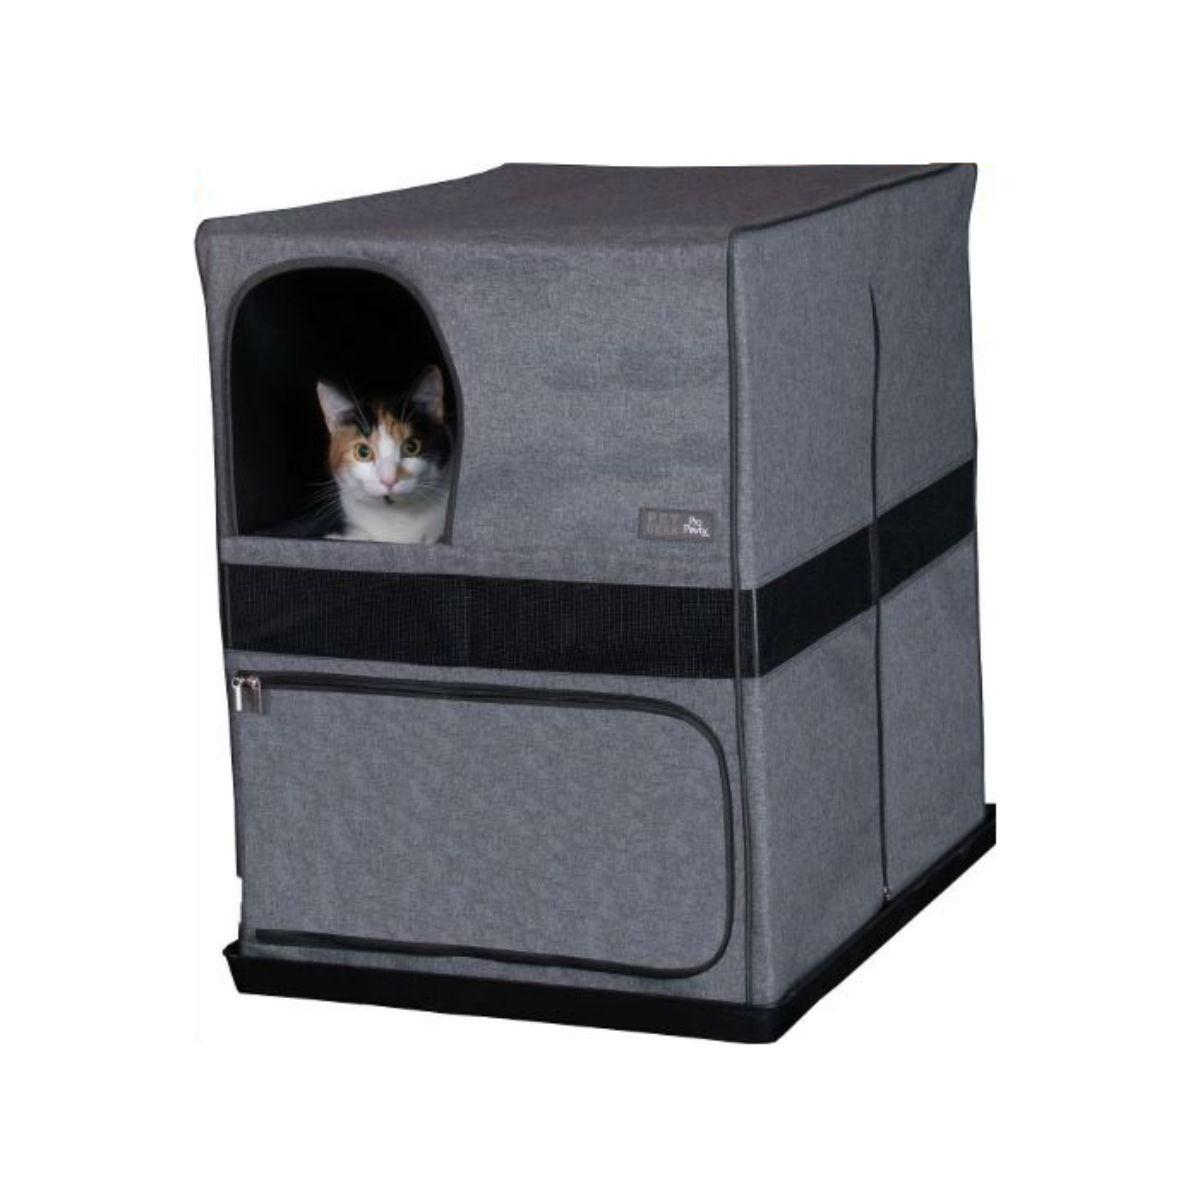 Pet Gear Pro Pawty for Cats Space Saver - Soft Charcoal